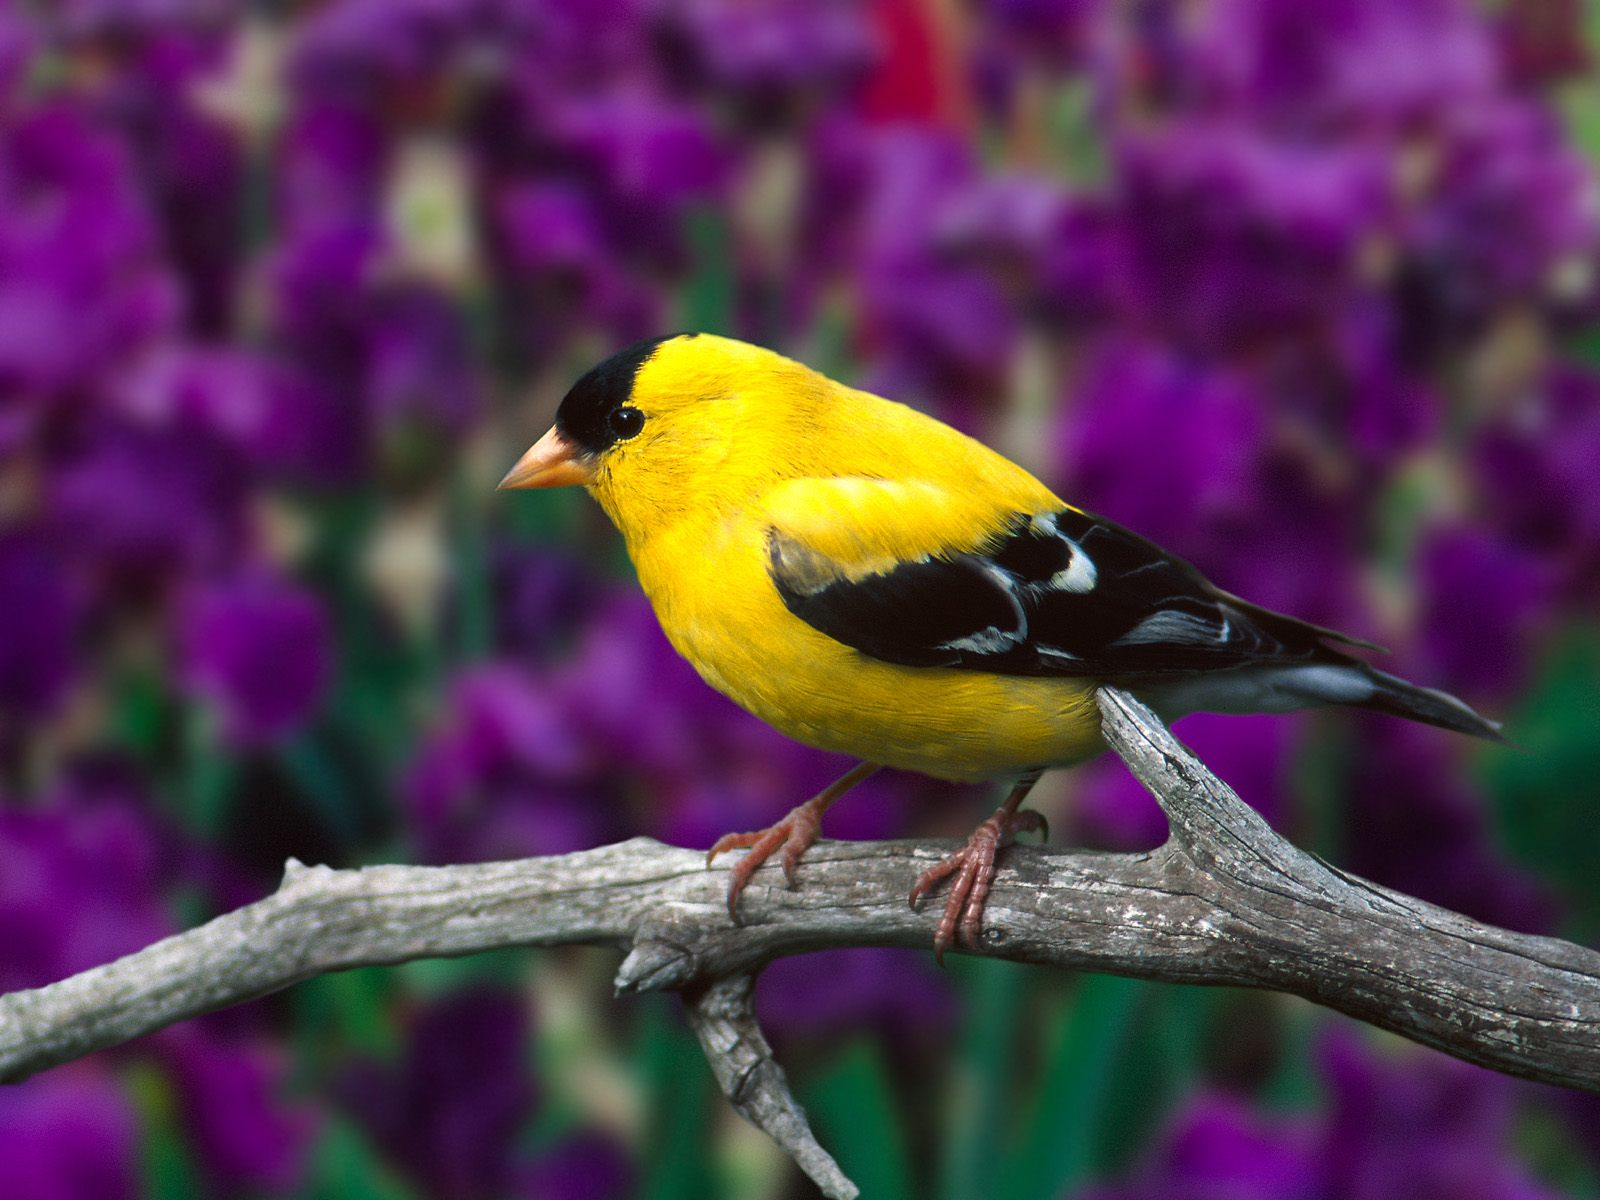 YELLOW BIRD ON TREE BRANCH WALLPAPER   283   HD Wallpapers 1600x1200